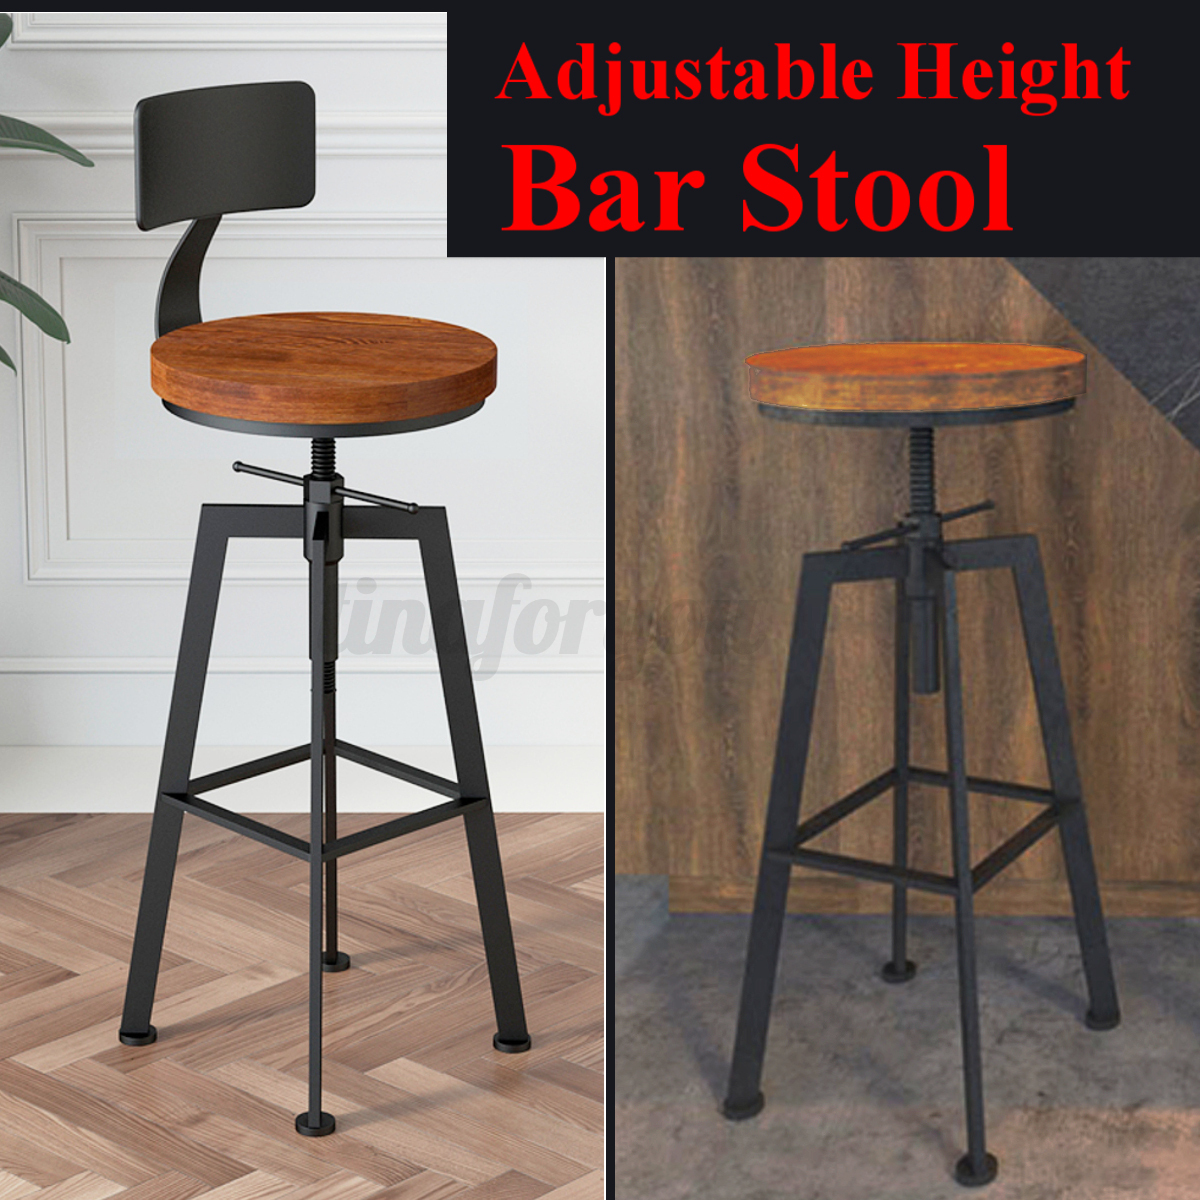 Industrial Bar Stools With Backs Vintage Industrial Bar Stool Metal Adjustable Height